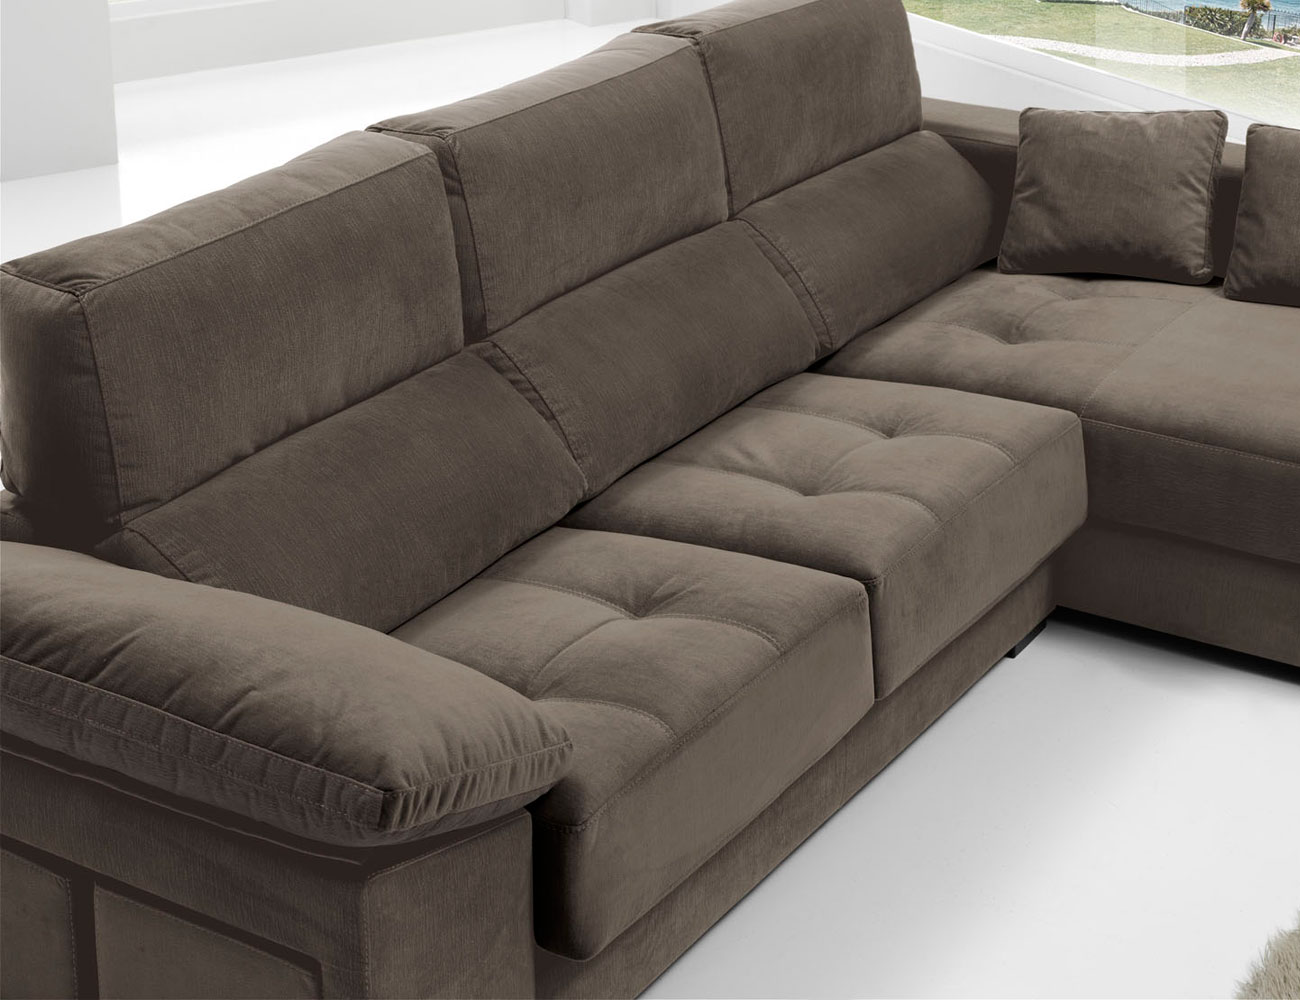 Sofa chaiselongue anti manchas bering pouf 259